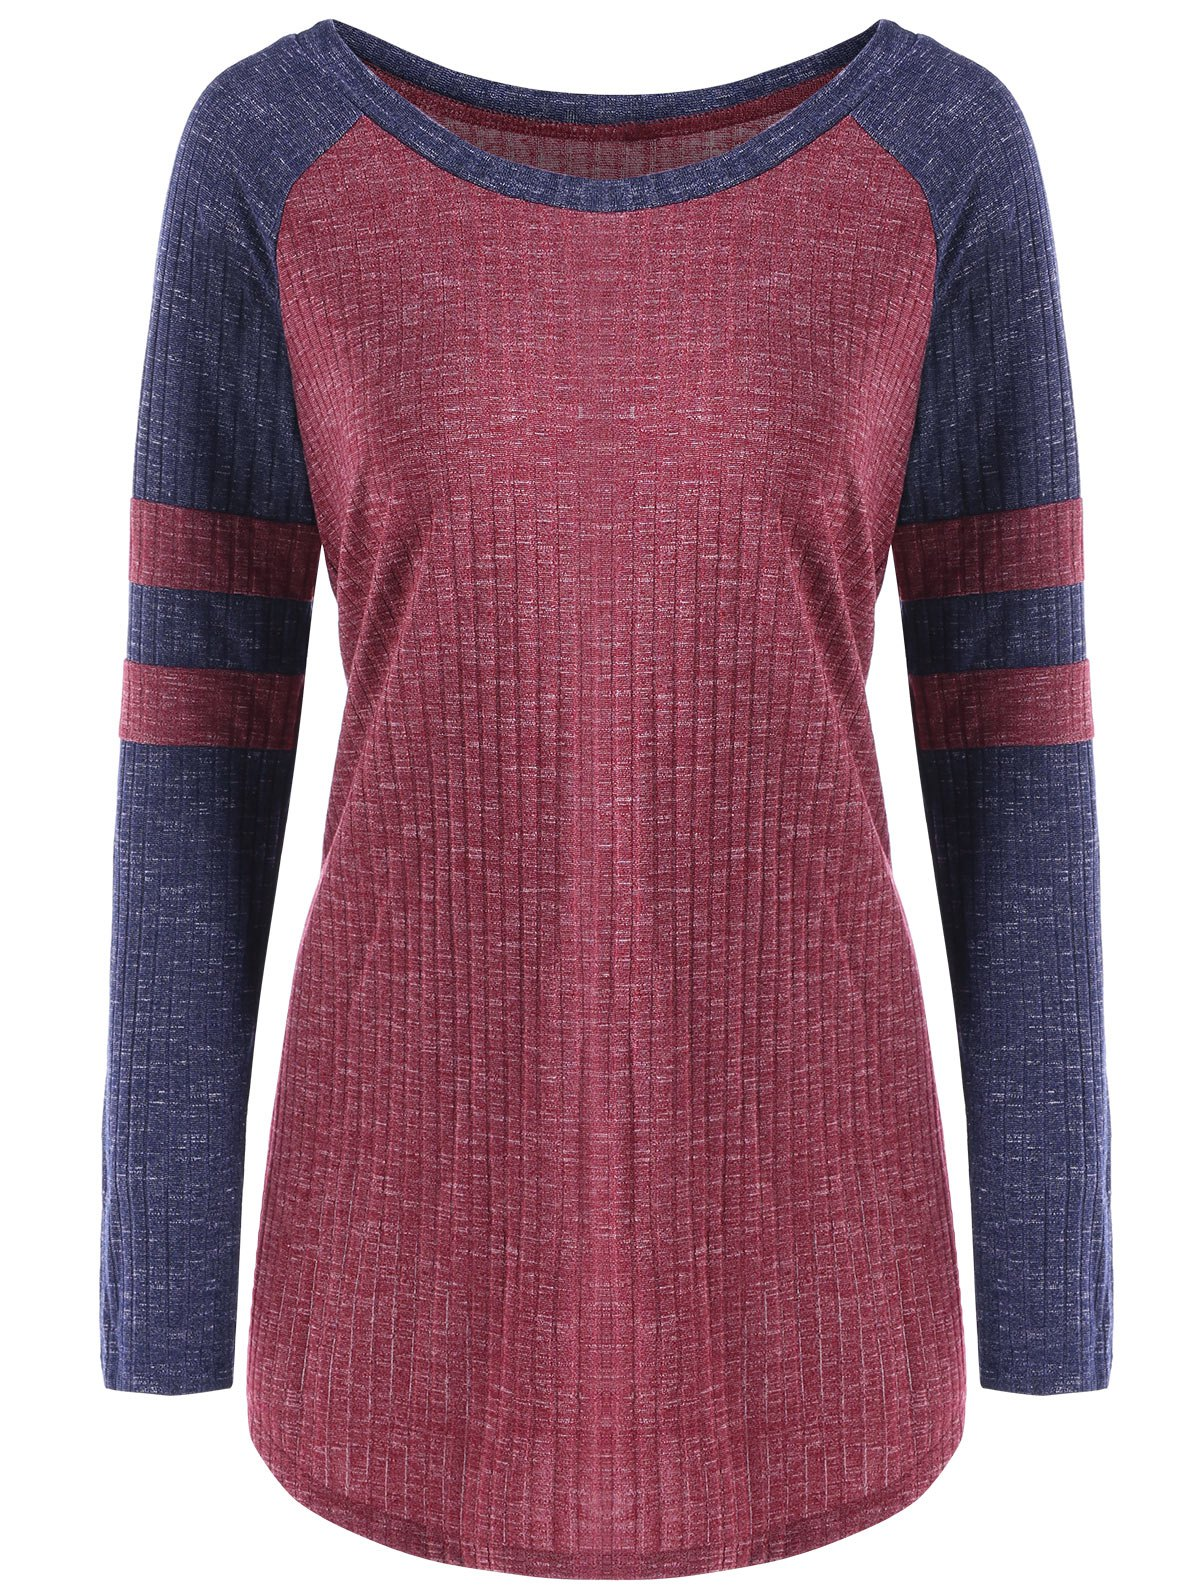 Ribbed Color Block Raglan Sleeve Top ribbed color block sweater